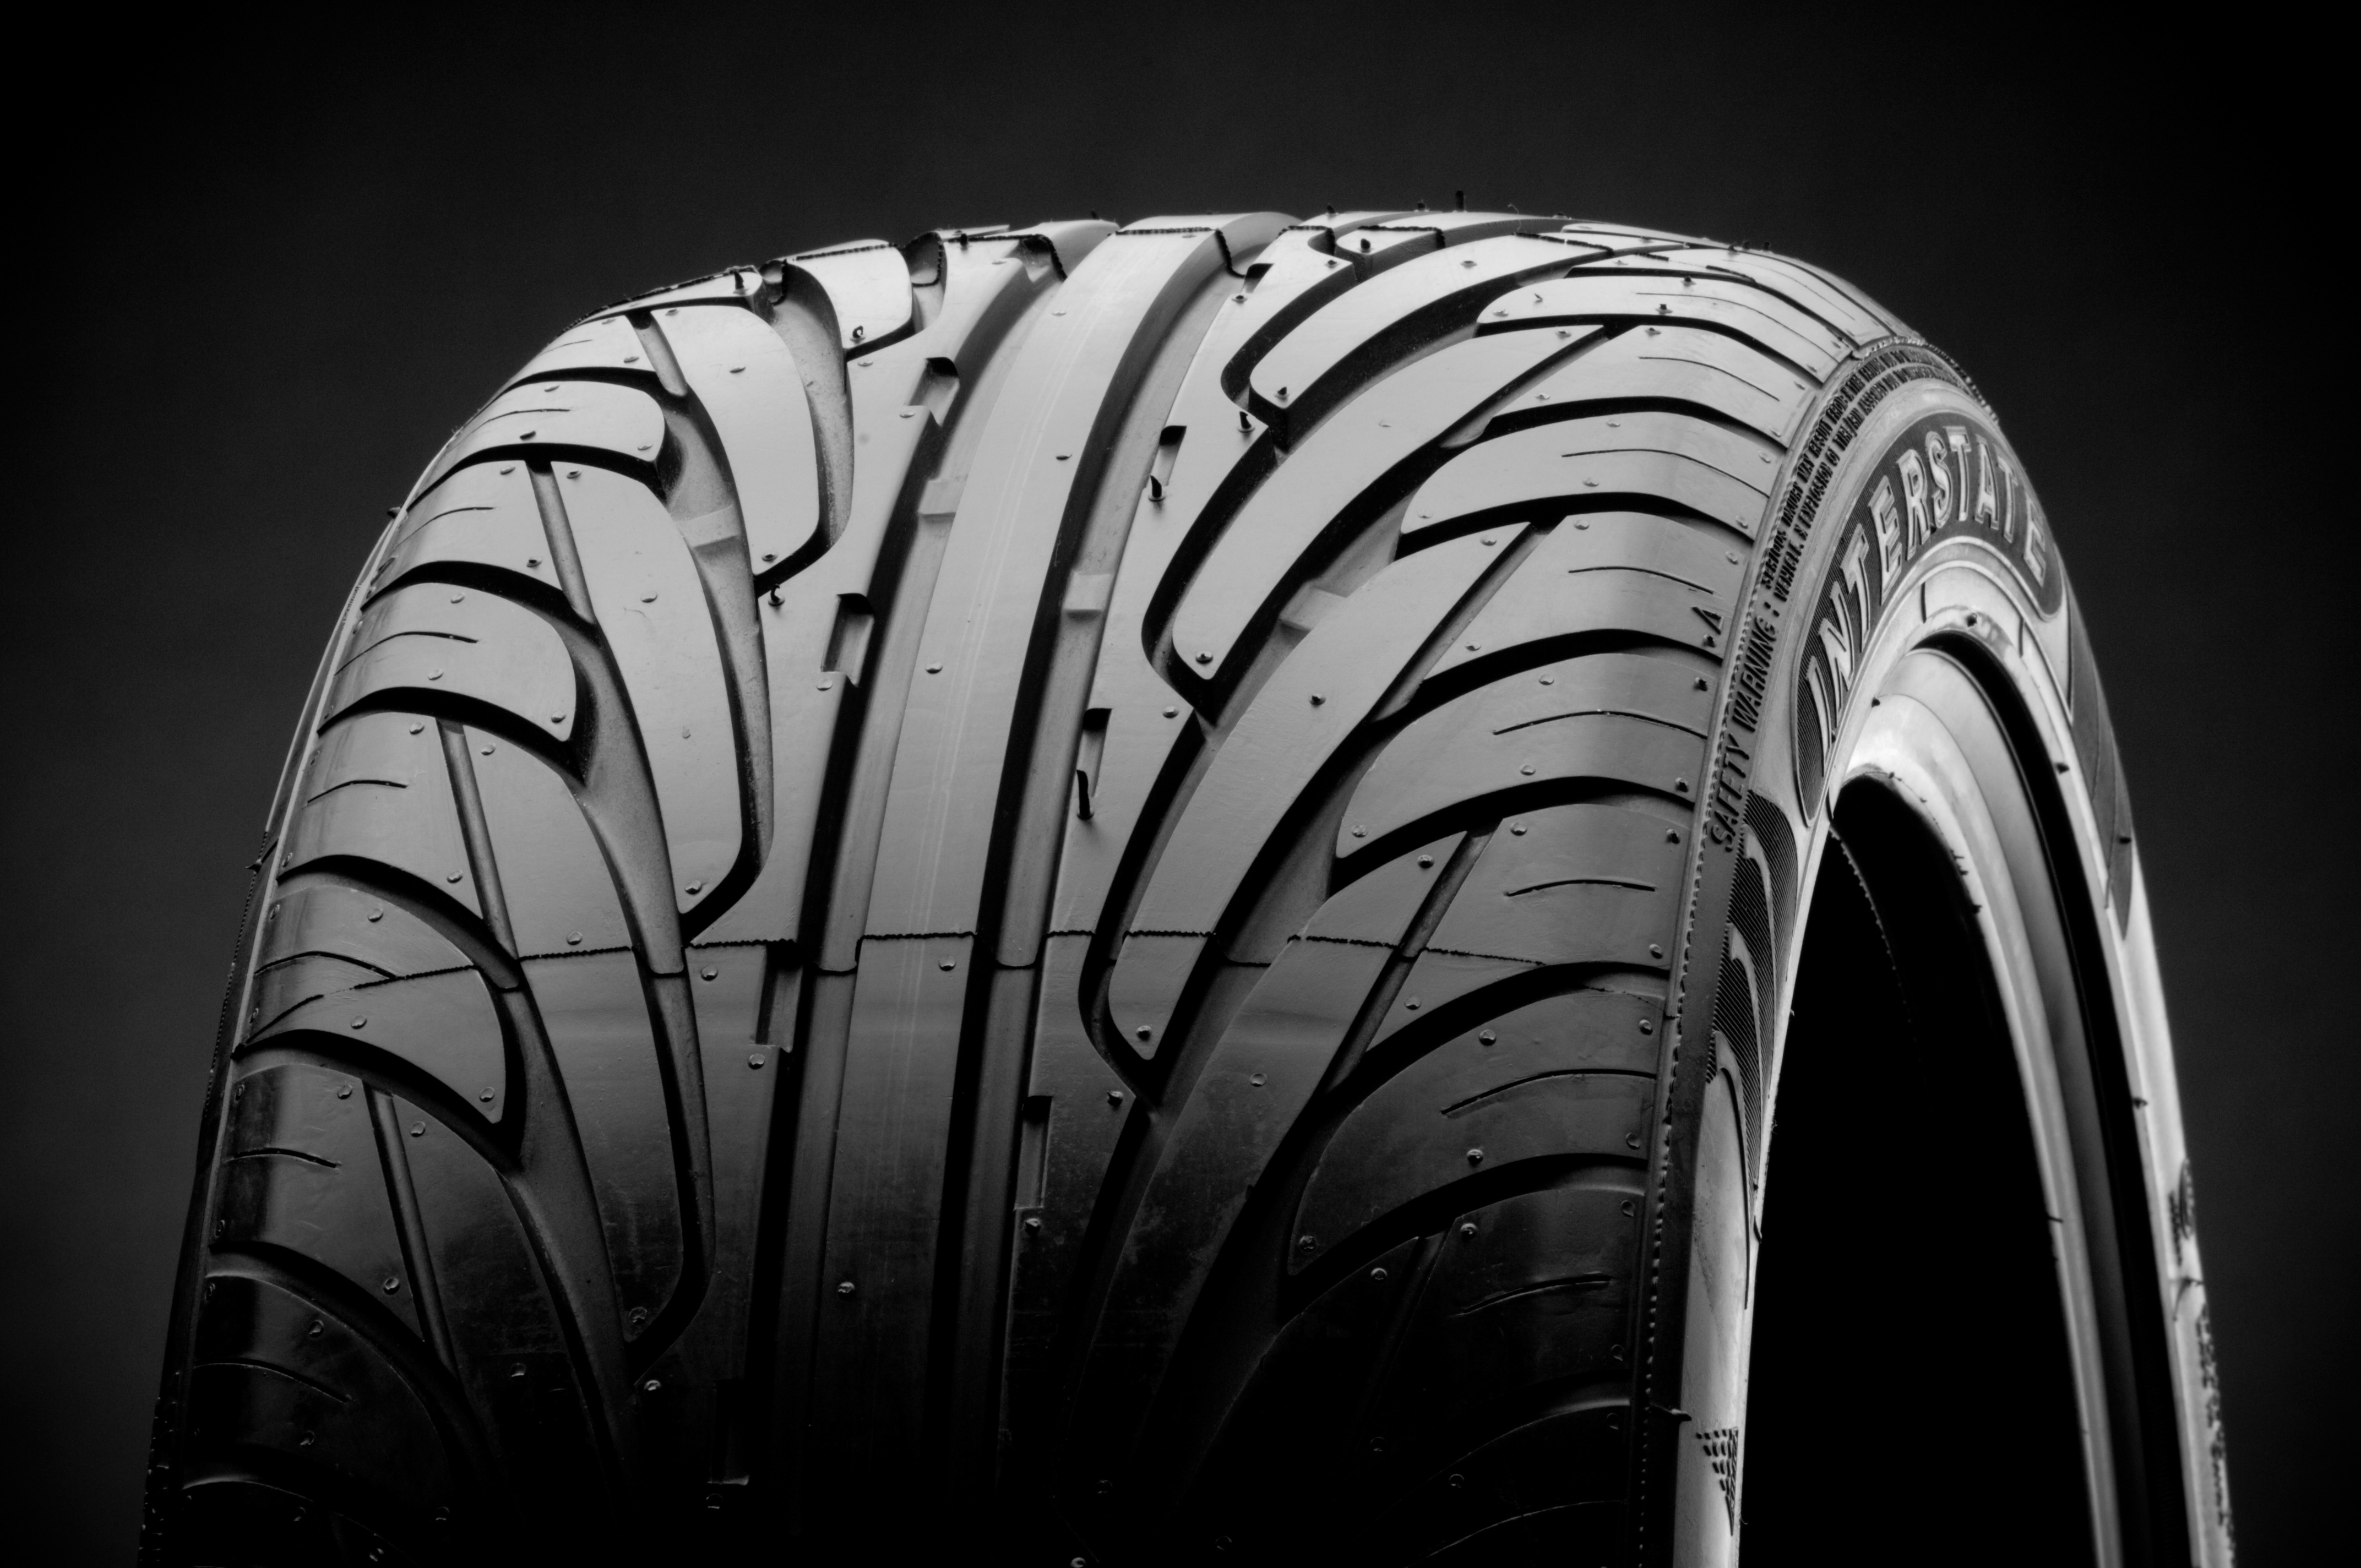 Come See Us for New Tires!